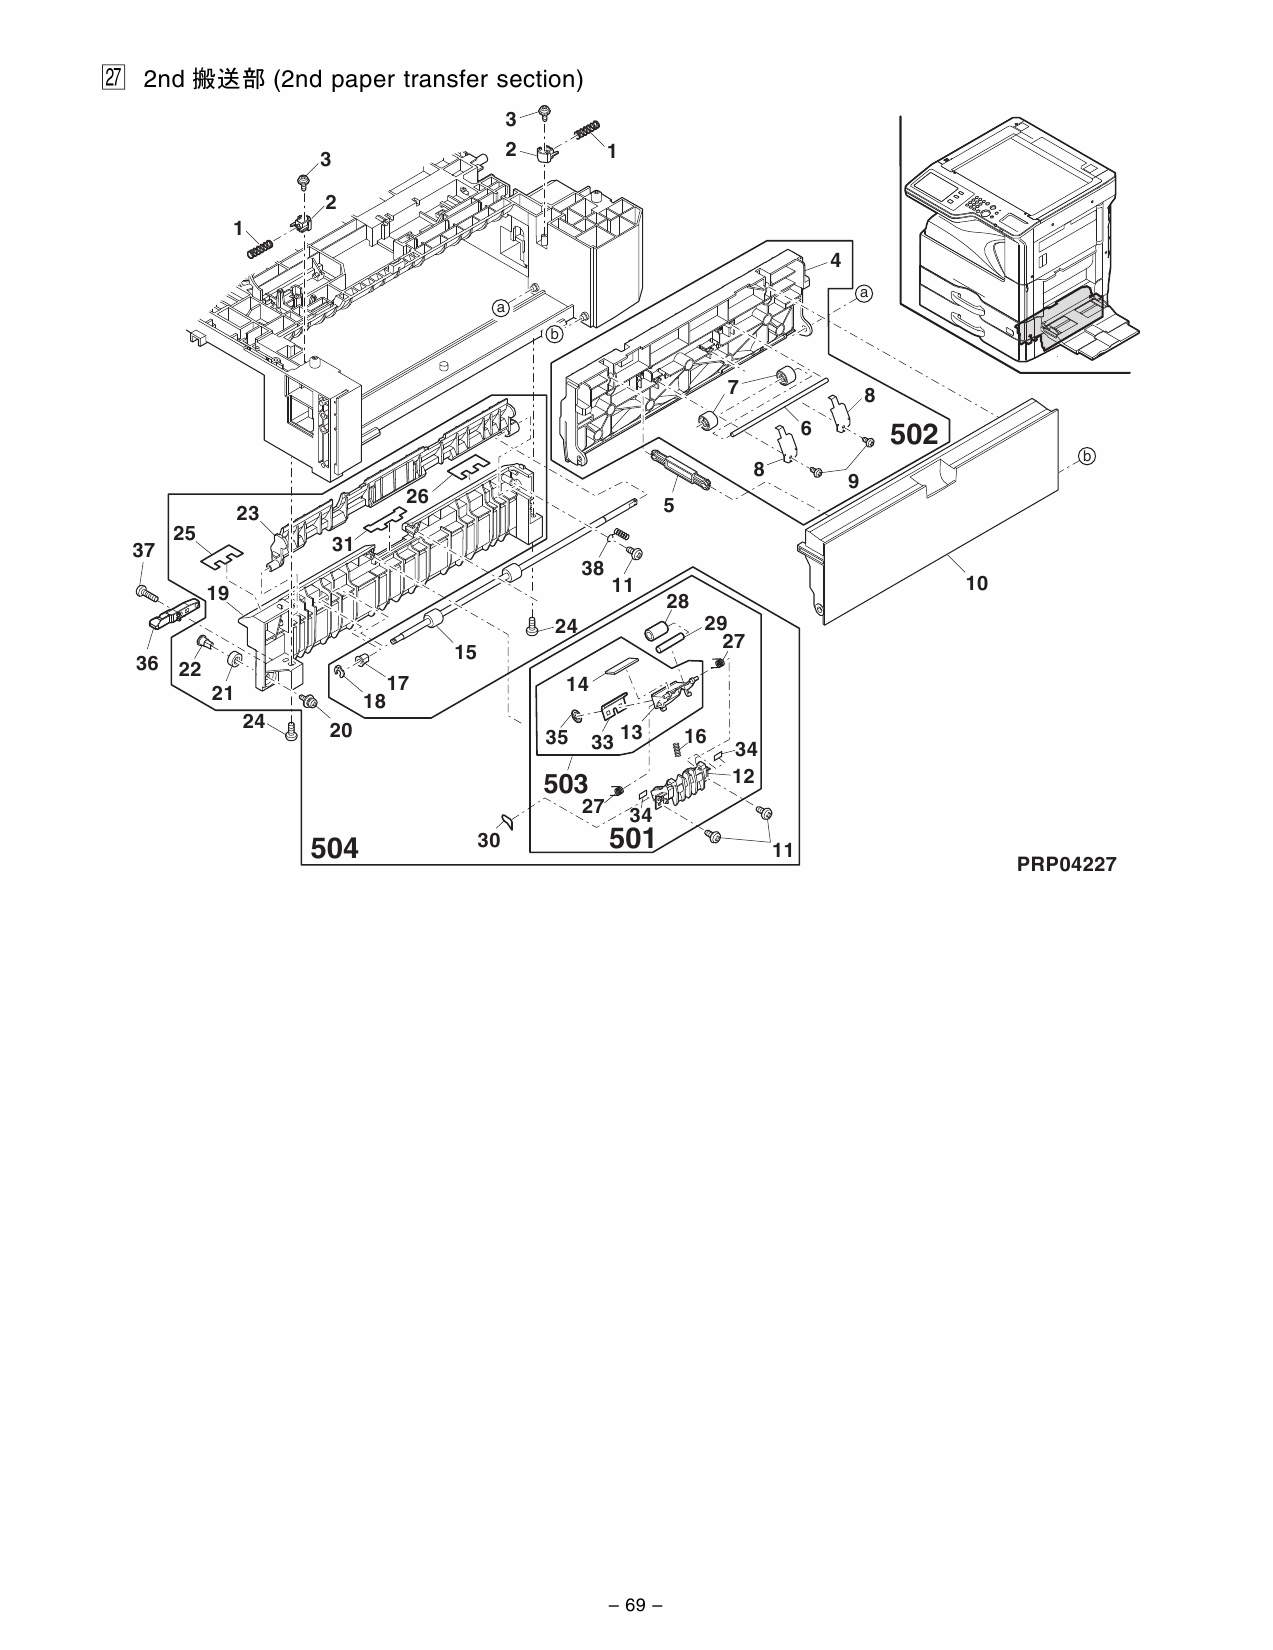 SHARP MX M264 314 354 U-N-FP Parts Manual